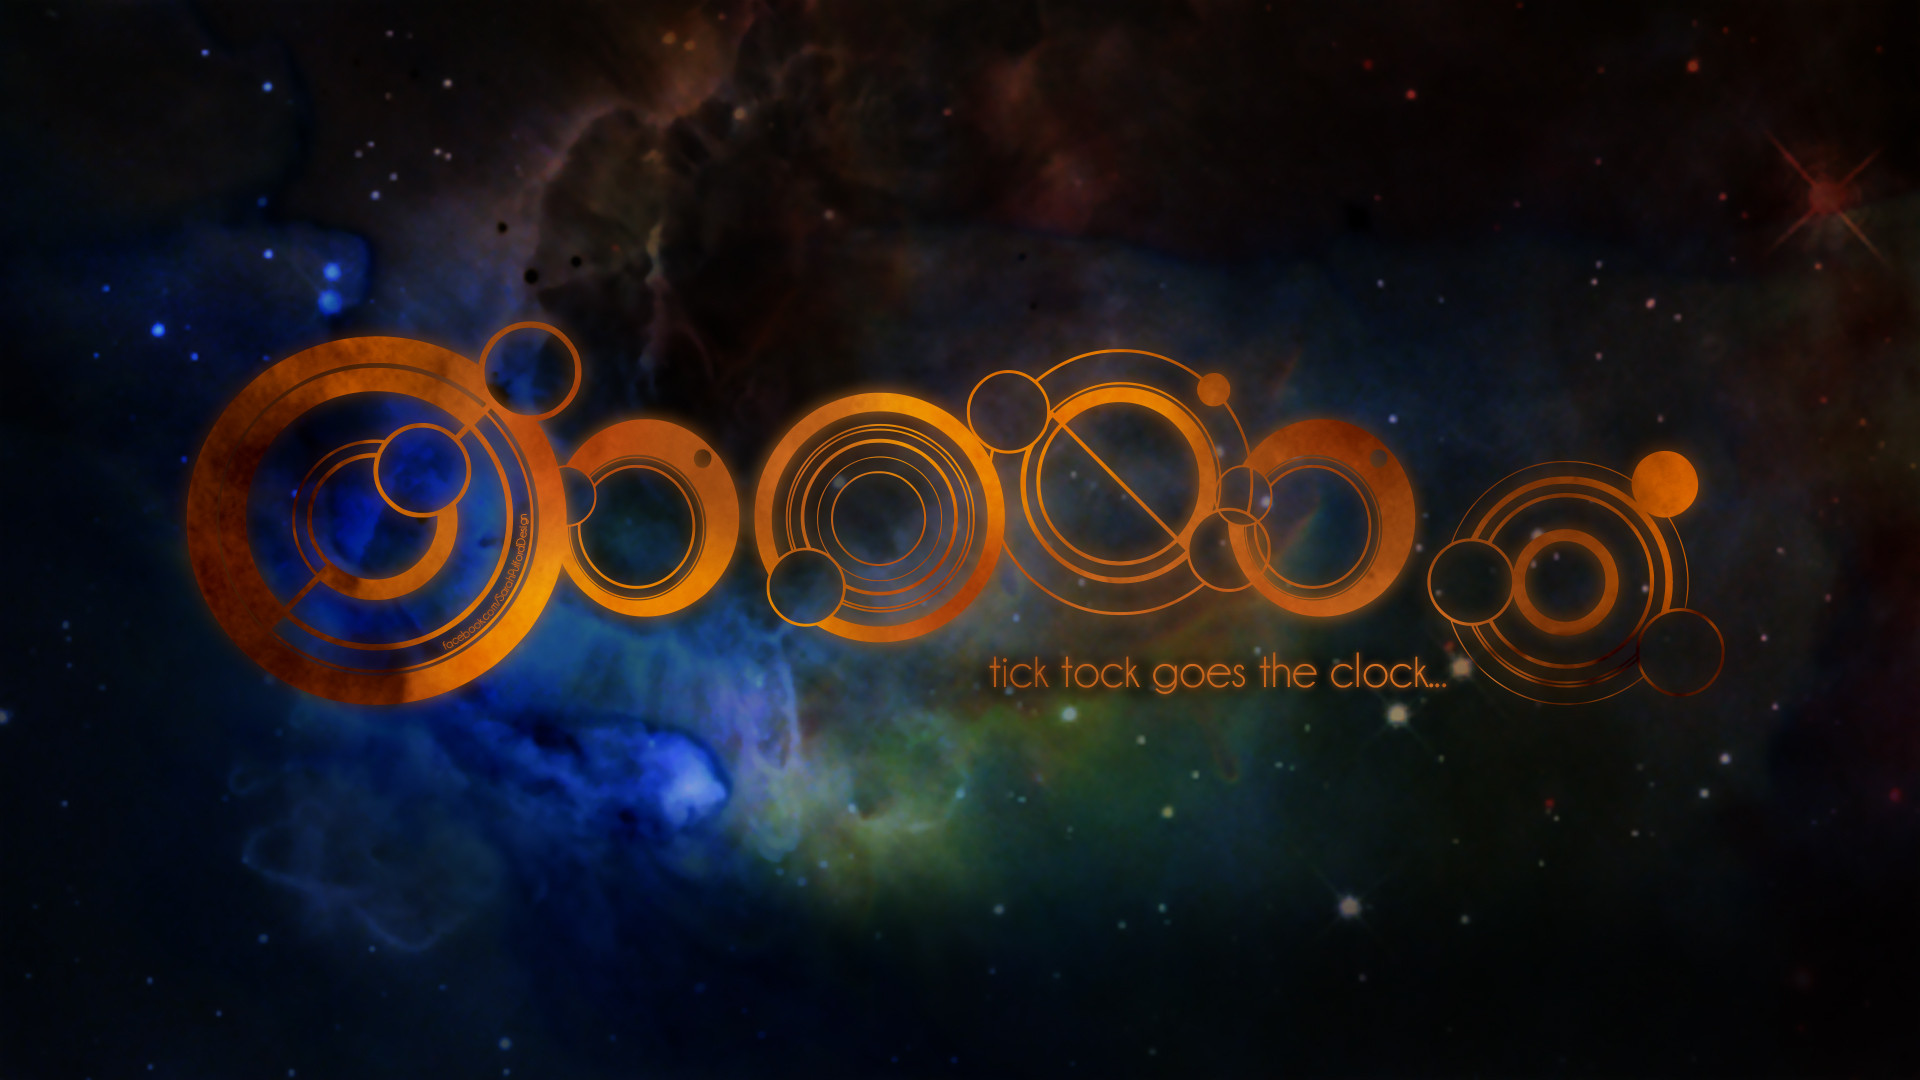 Doctor Who HD Wallpapers for desktop download 1920x1080